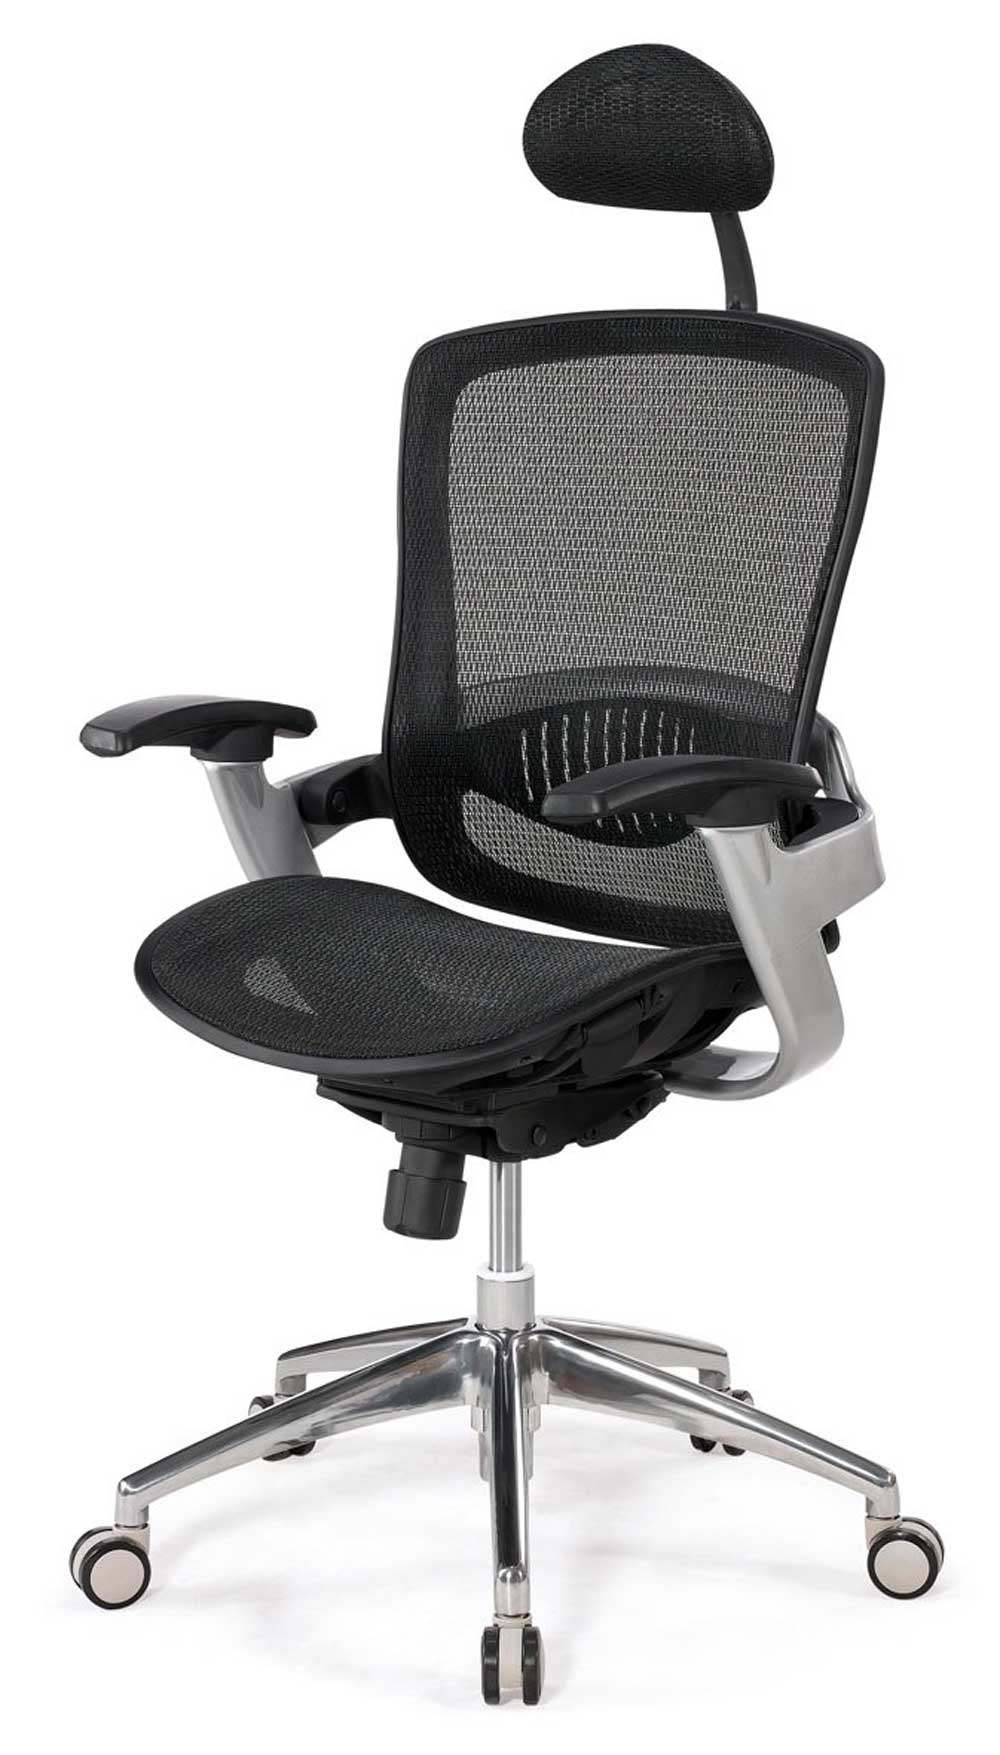 KT mesh foam black rolling office chair